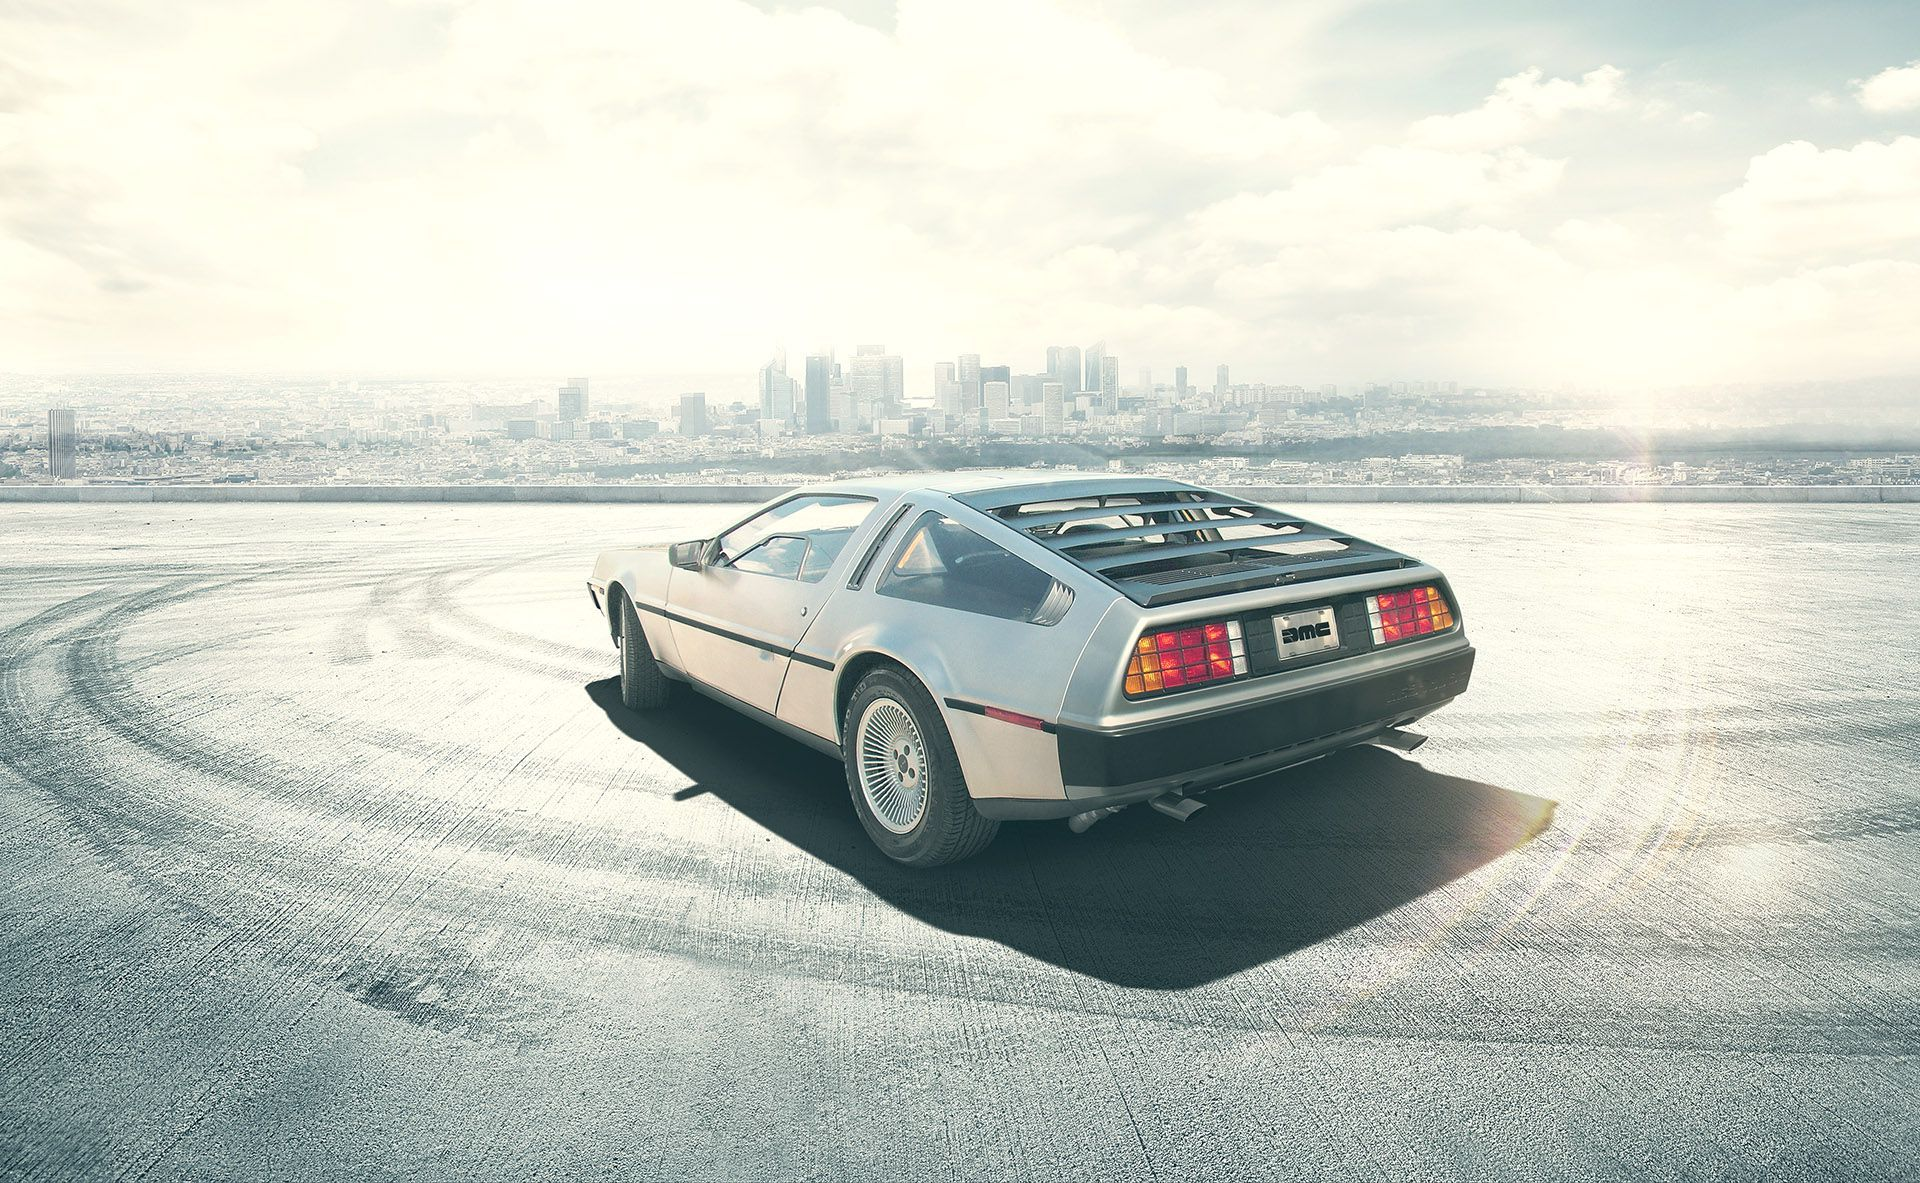 dmc delorean desktop wallpaper hd 62497